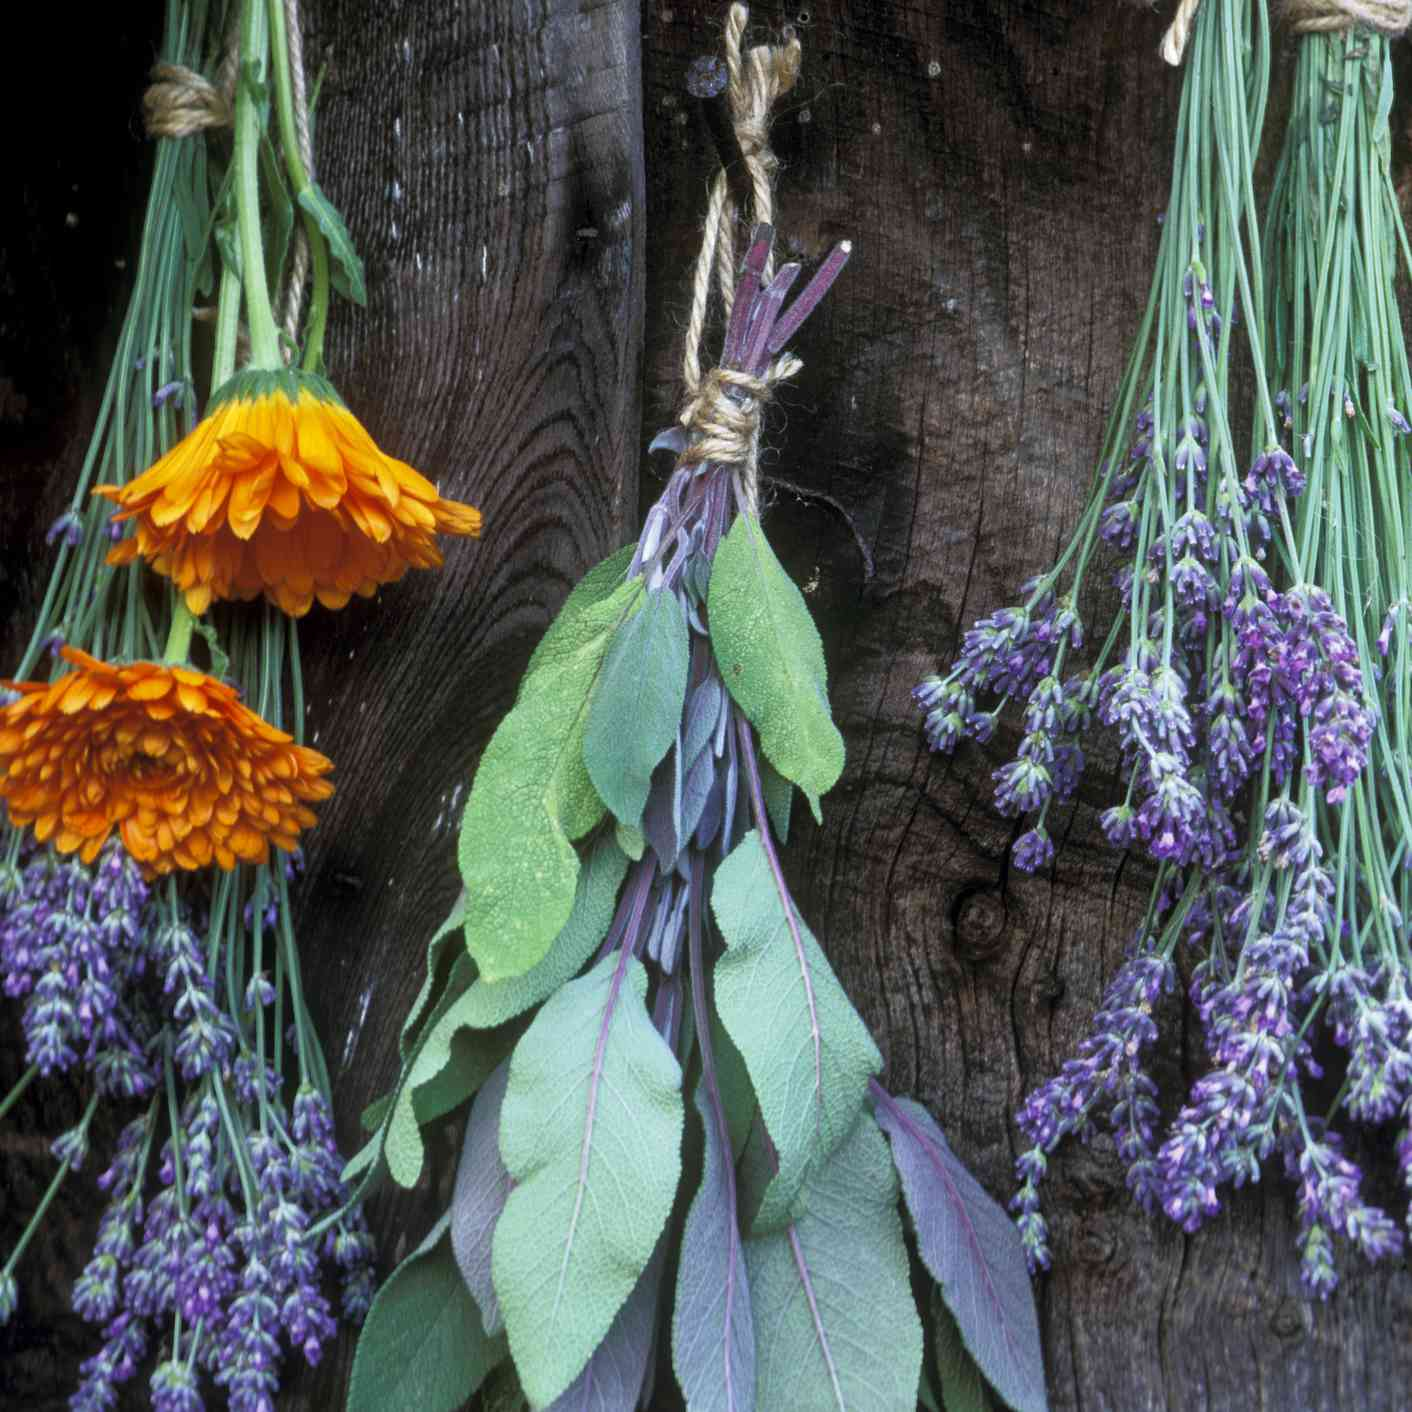 bunches of herbs hanging upside down to dry in front of wood wall